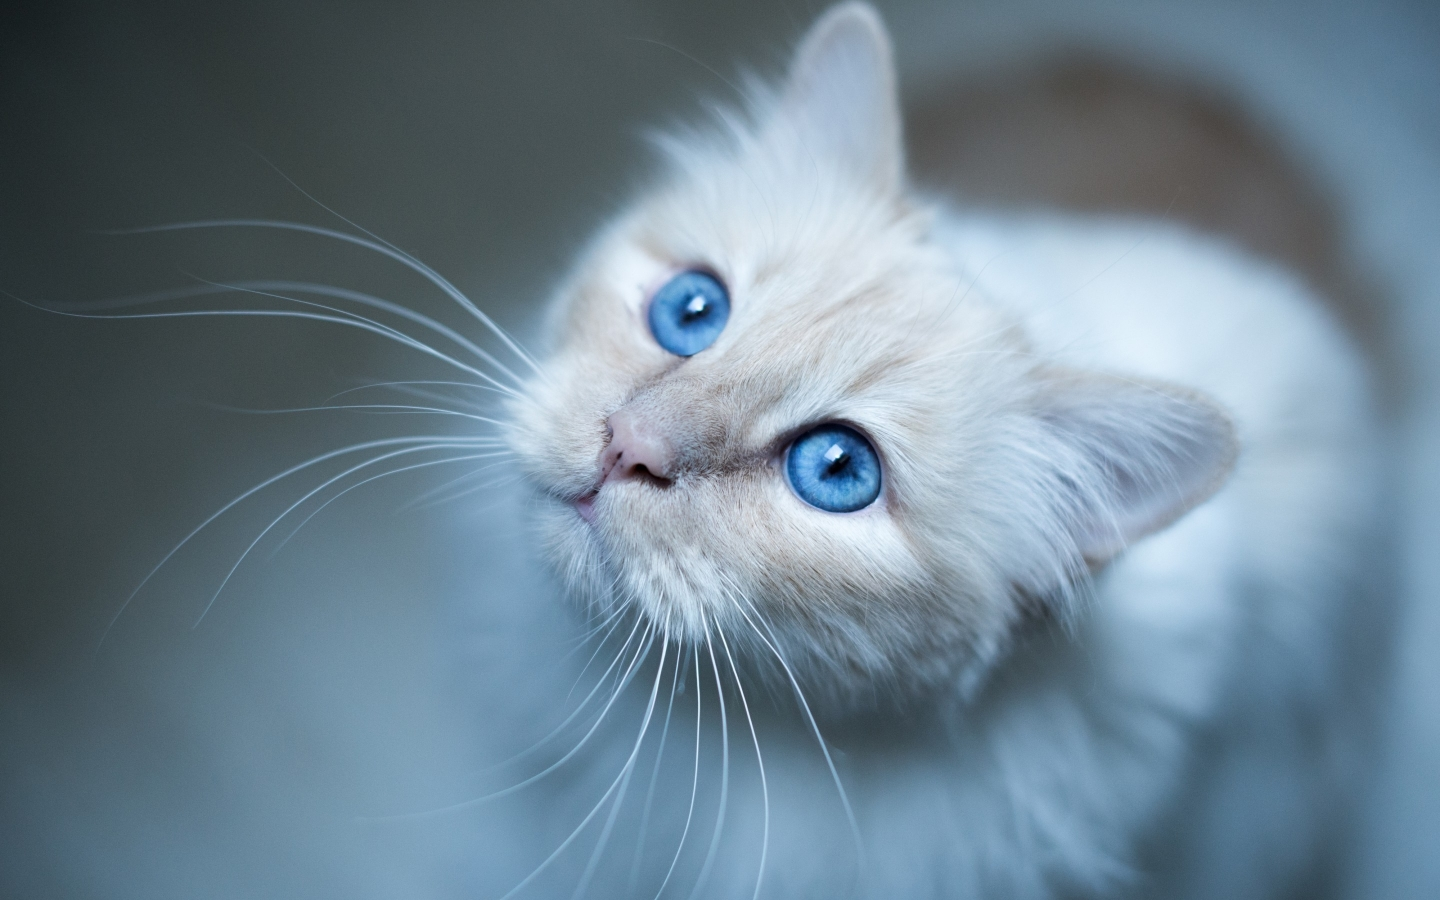 Kitty Blue Eyes for 1440 x 900 widescreen resolution